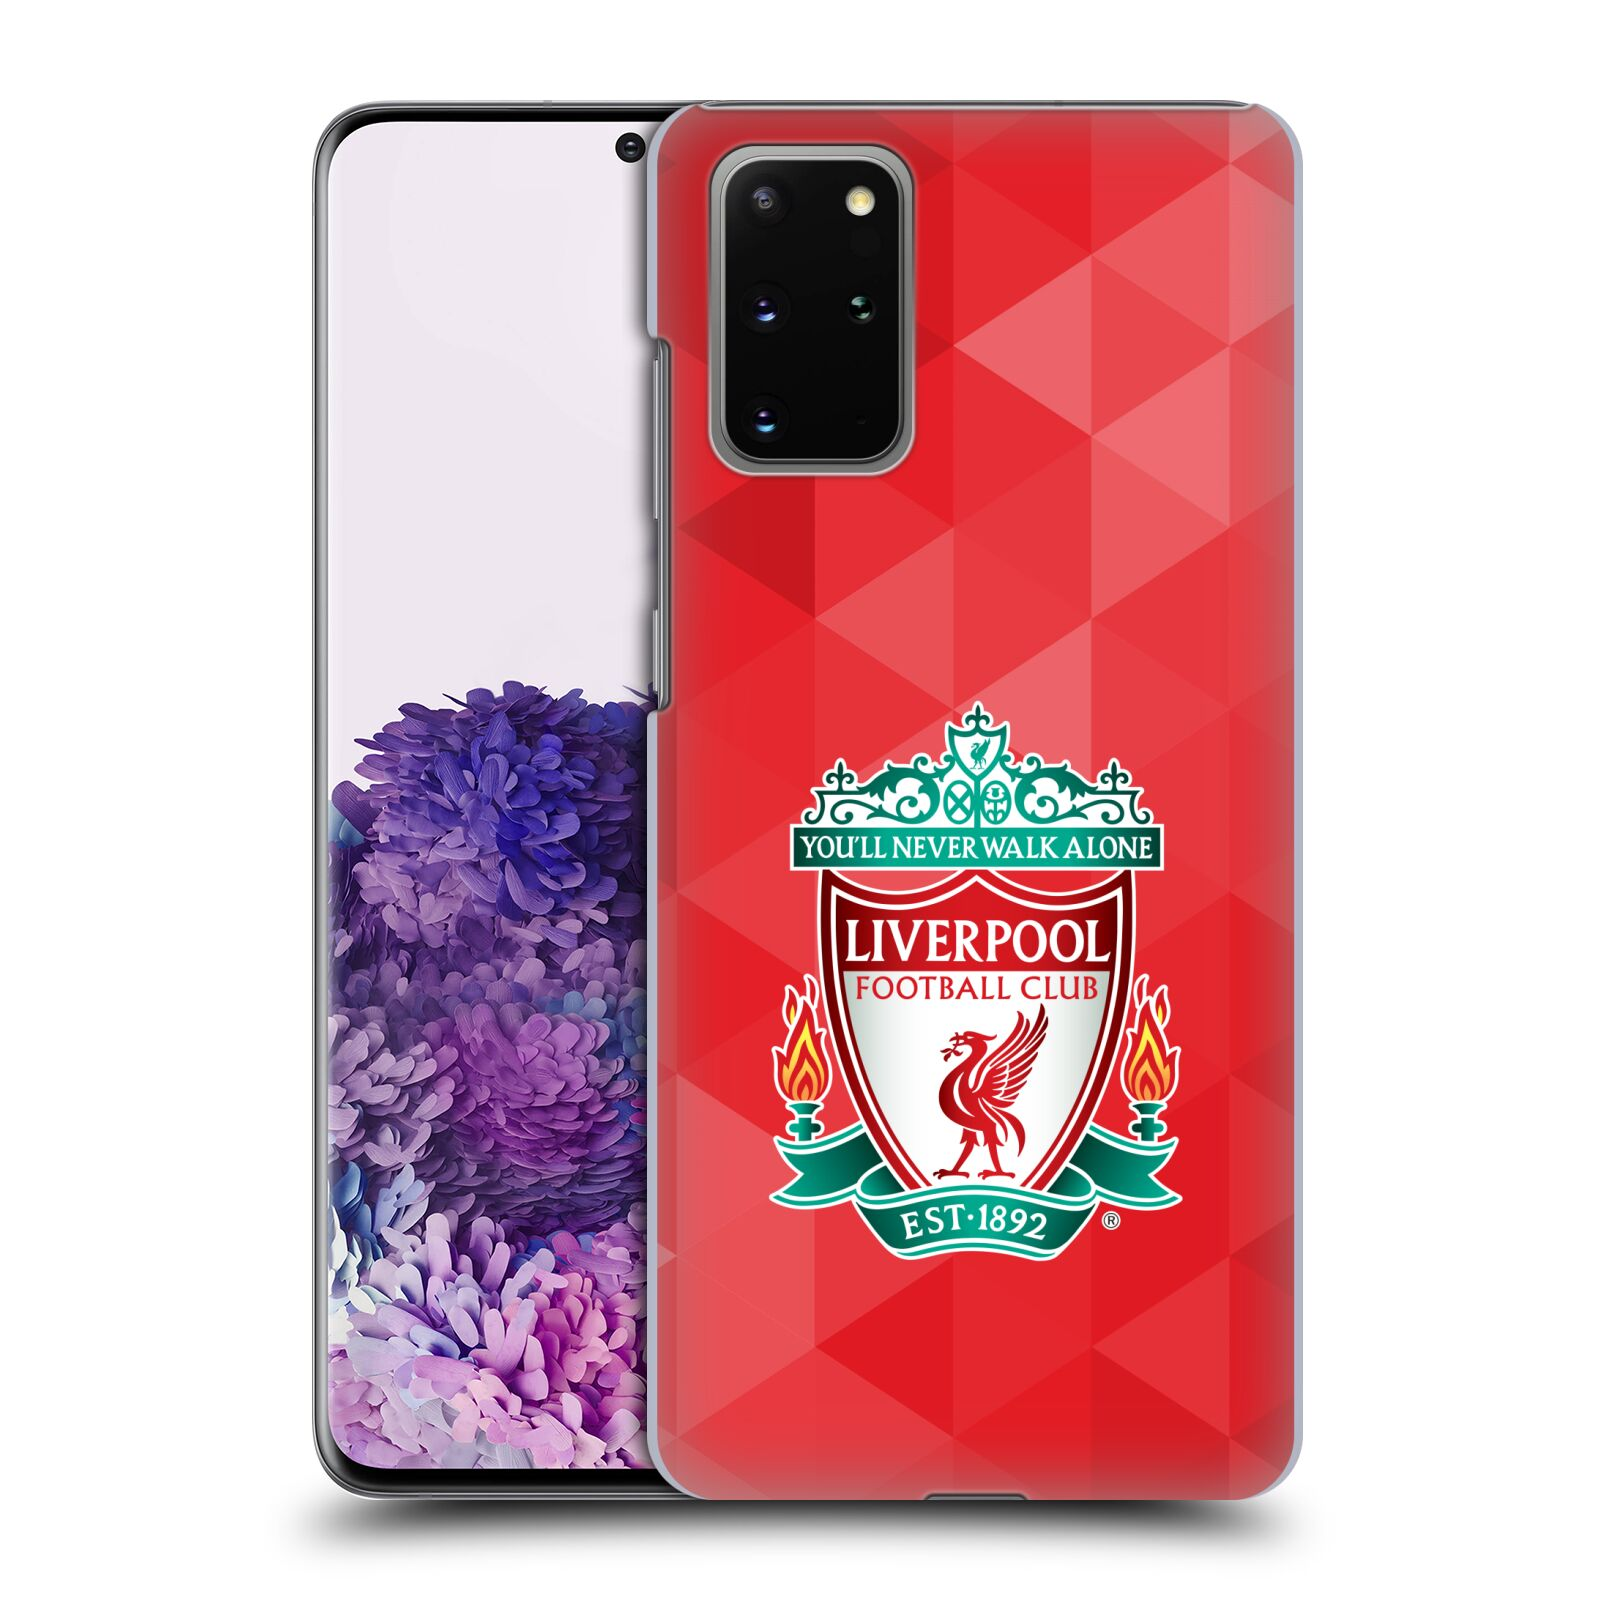 Plastové pouzdro na mobil Samsung Galaxy S20 Plus - Head Case - ZNAK LIVERPOOL FC OFFICIAL GEOMETRIC RED